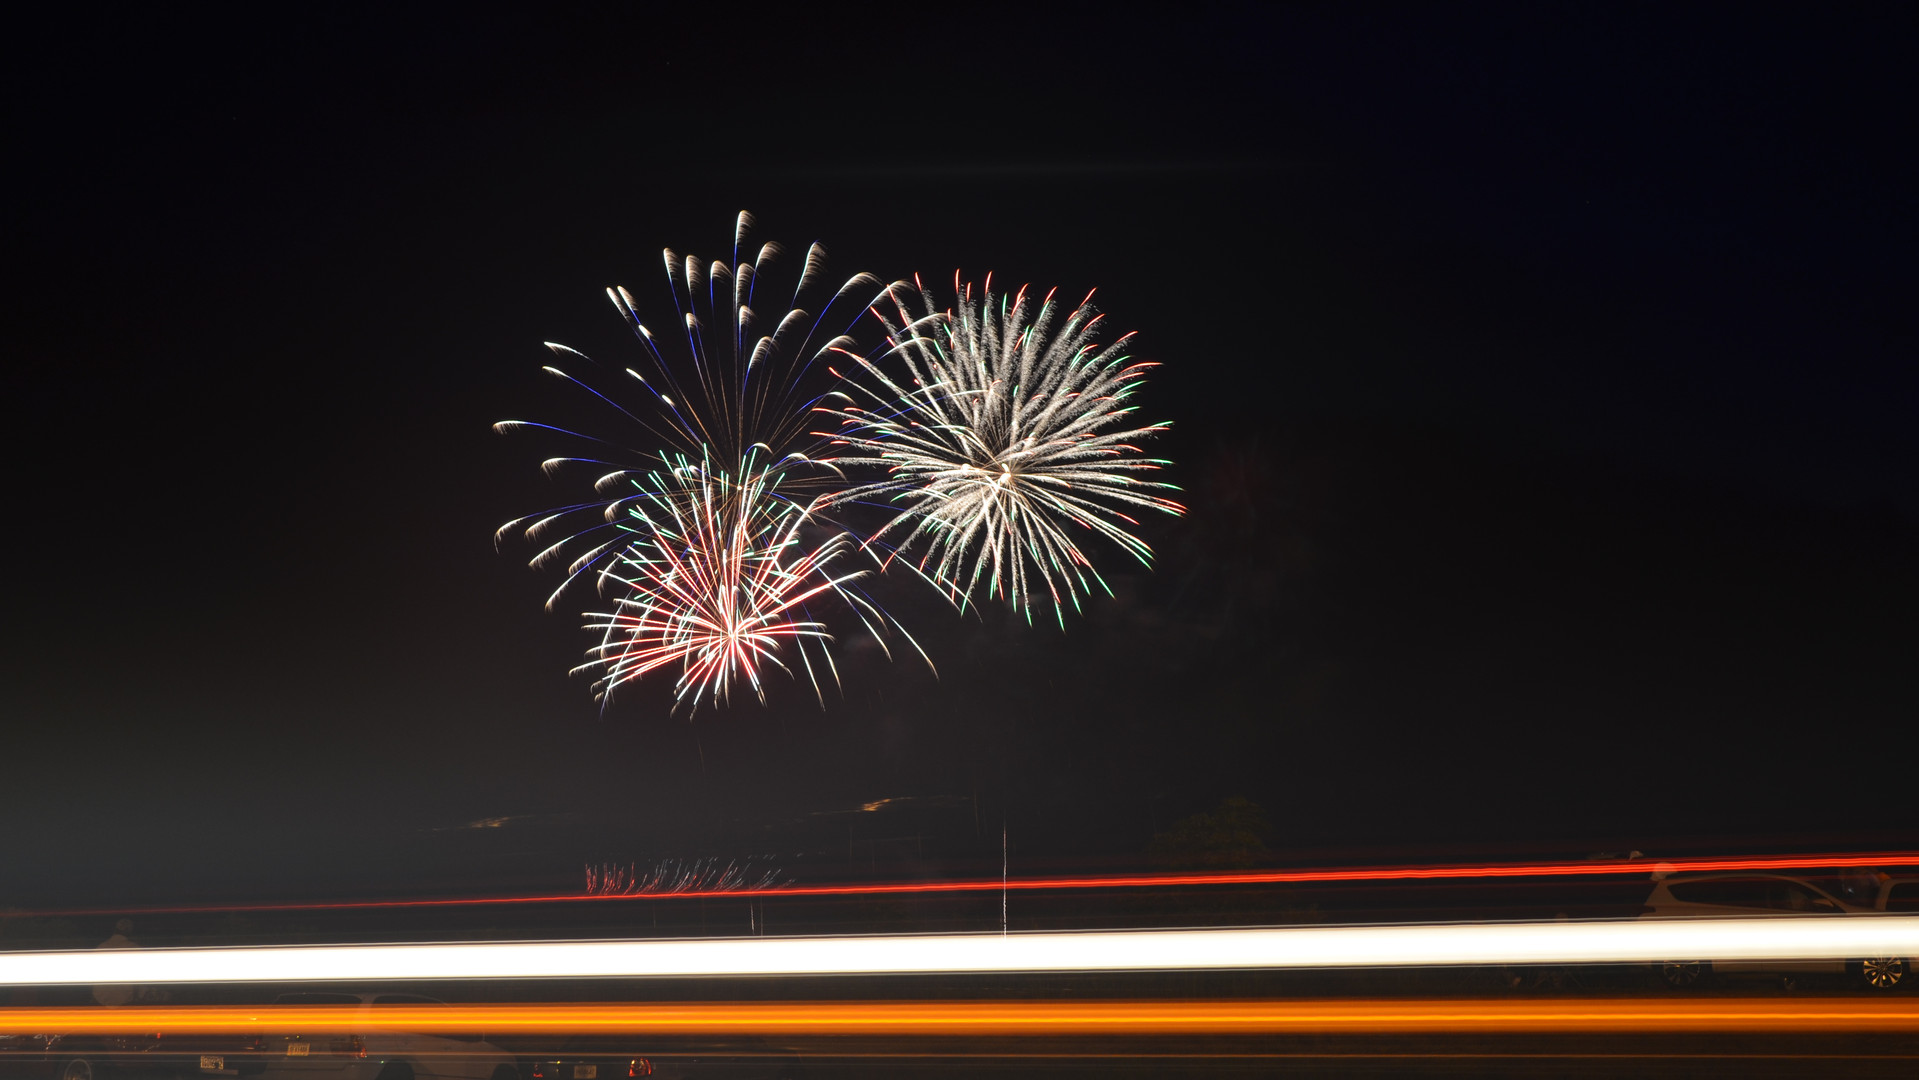 Traffic passes by on Ga. 257 while fireworks explode in the distance above the Dublin Civitan Fairgrounds during a 2018 Fourth of July celebration.